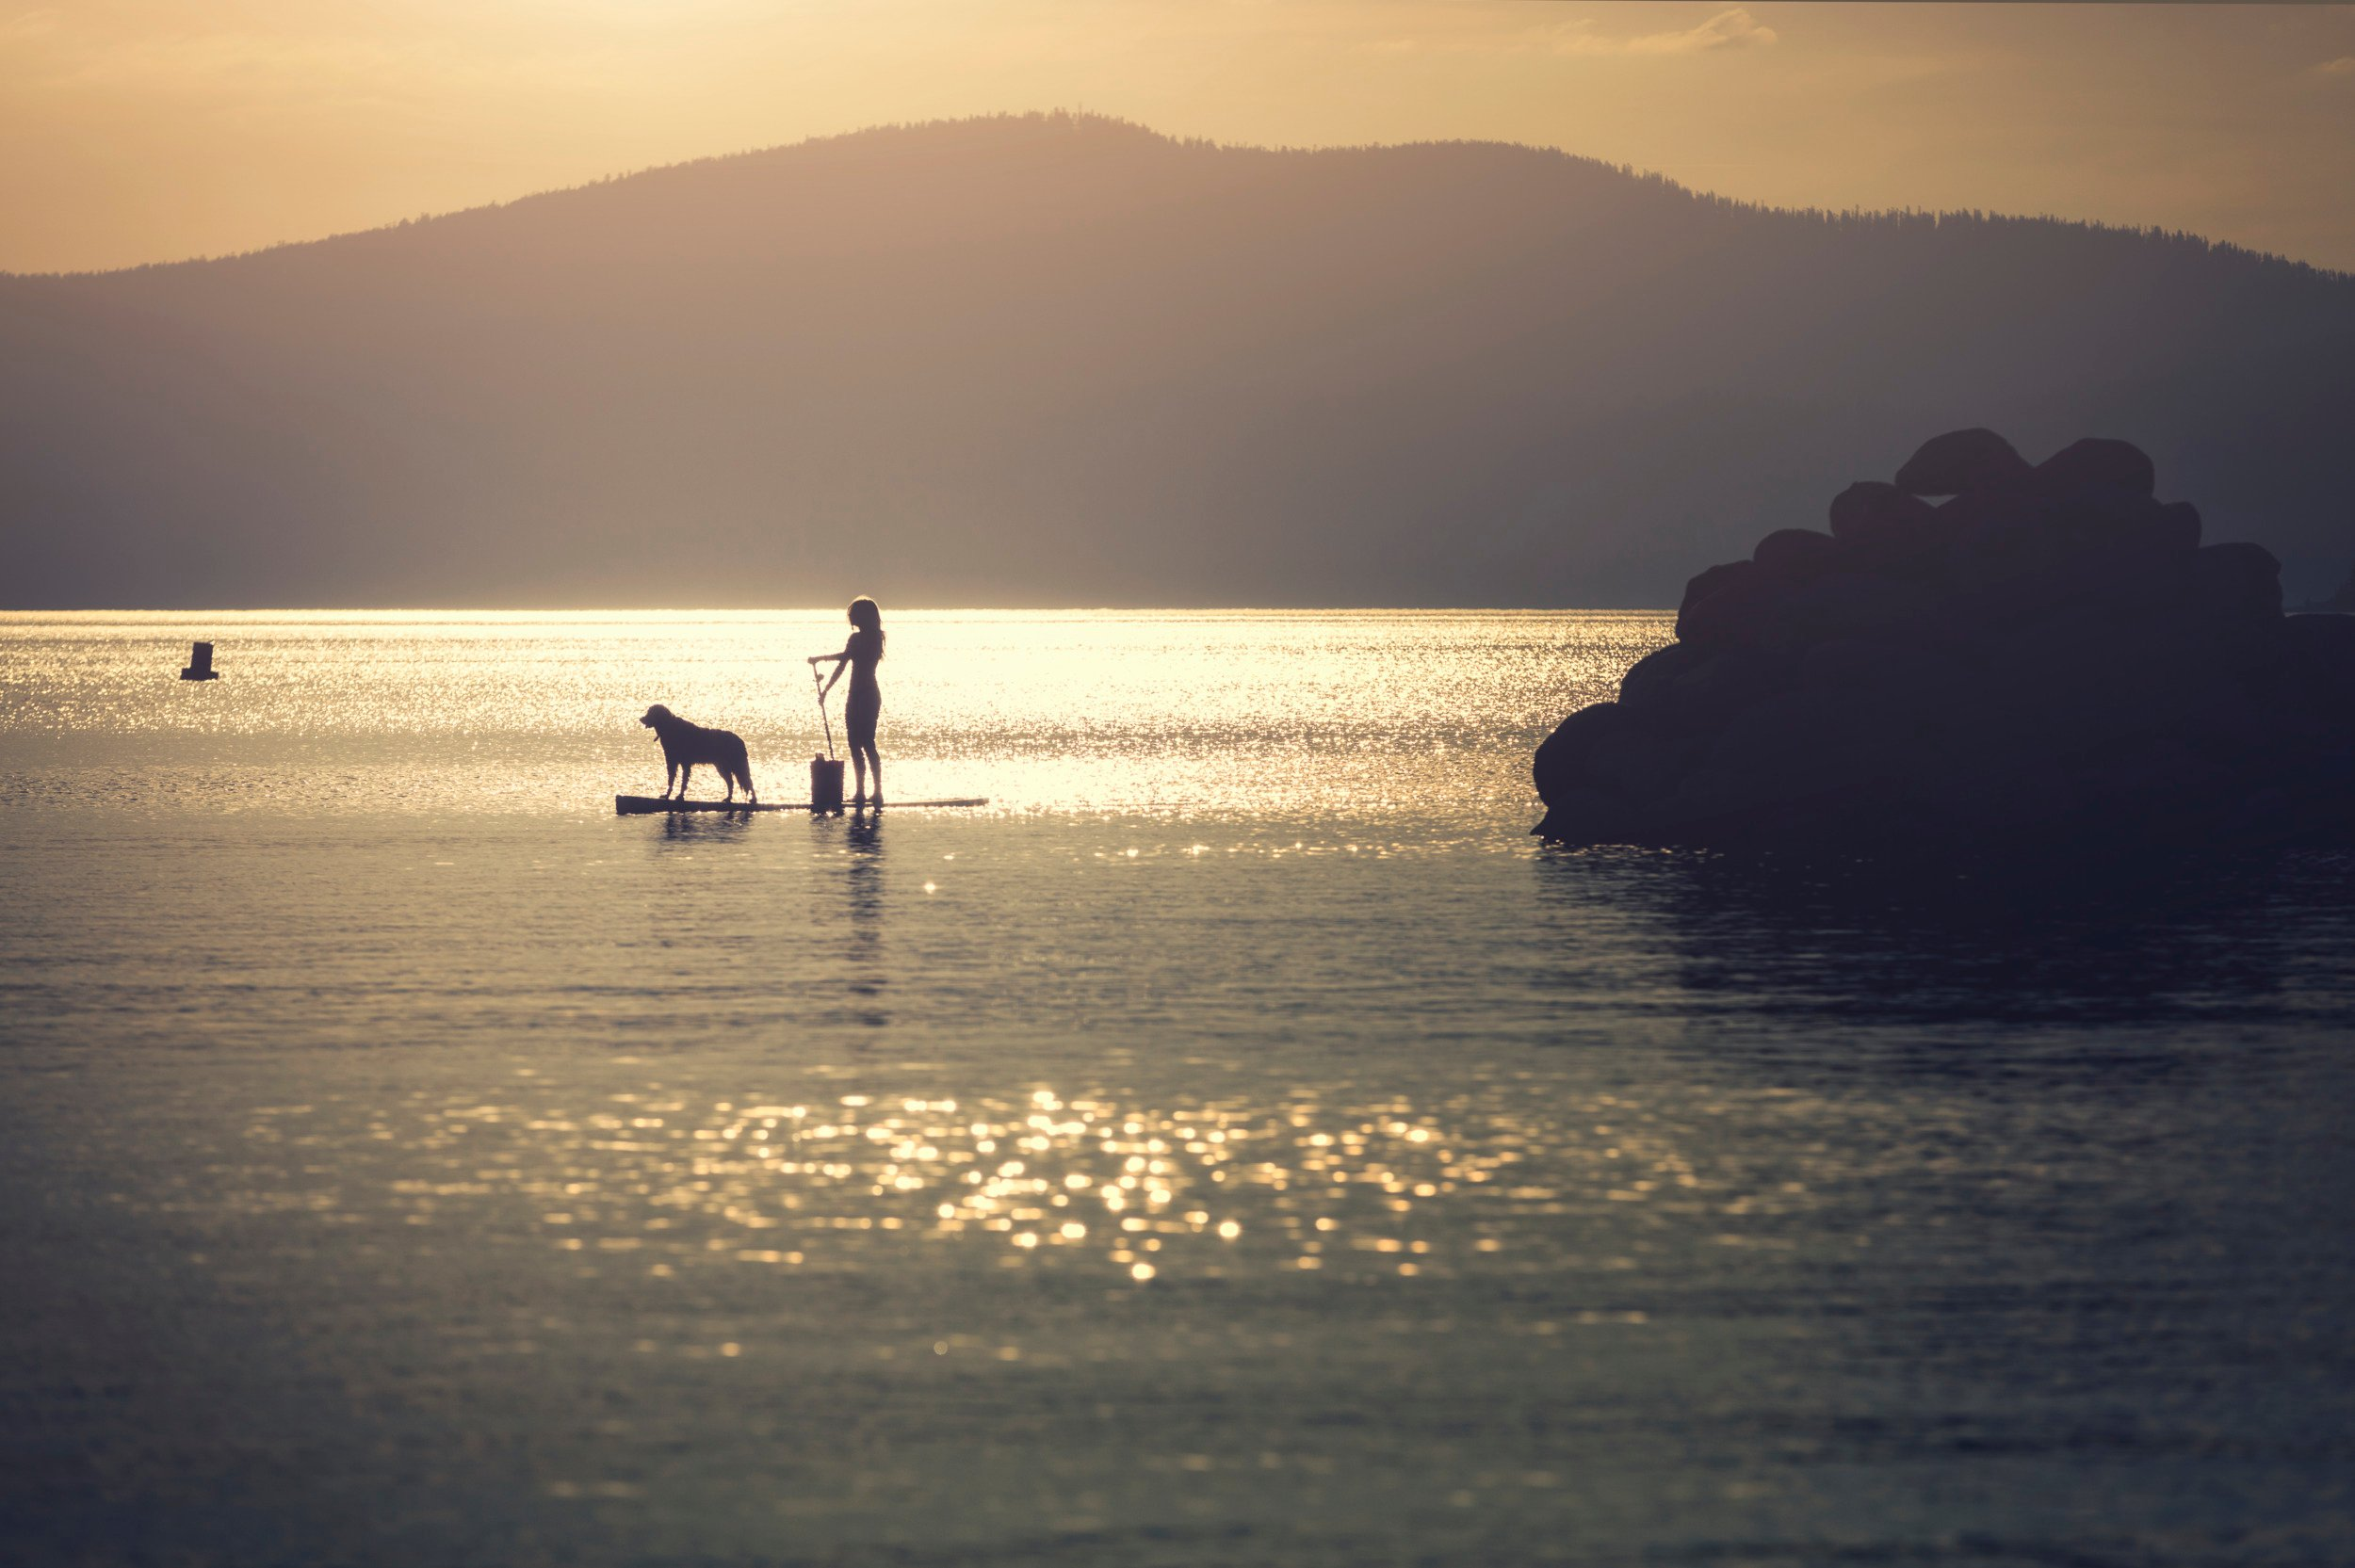 Dometic, lake, dog, paddleboard, sunset, ocean, mountain, lifestyle